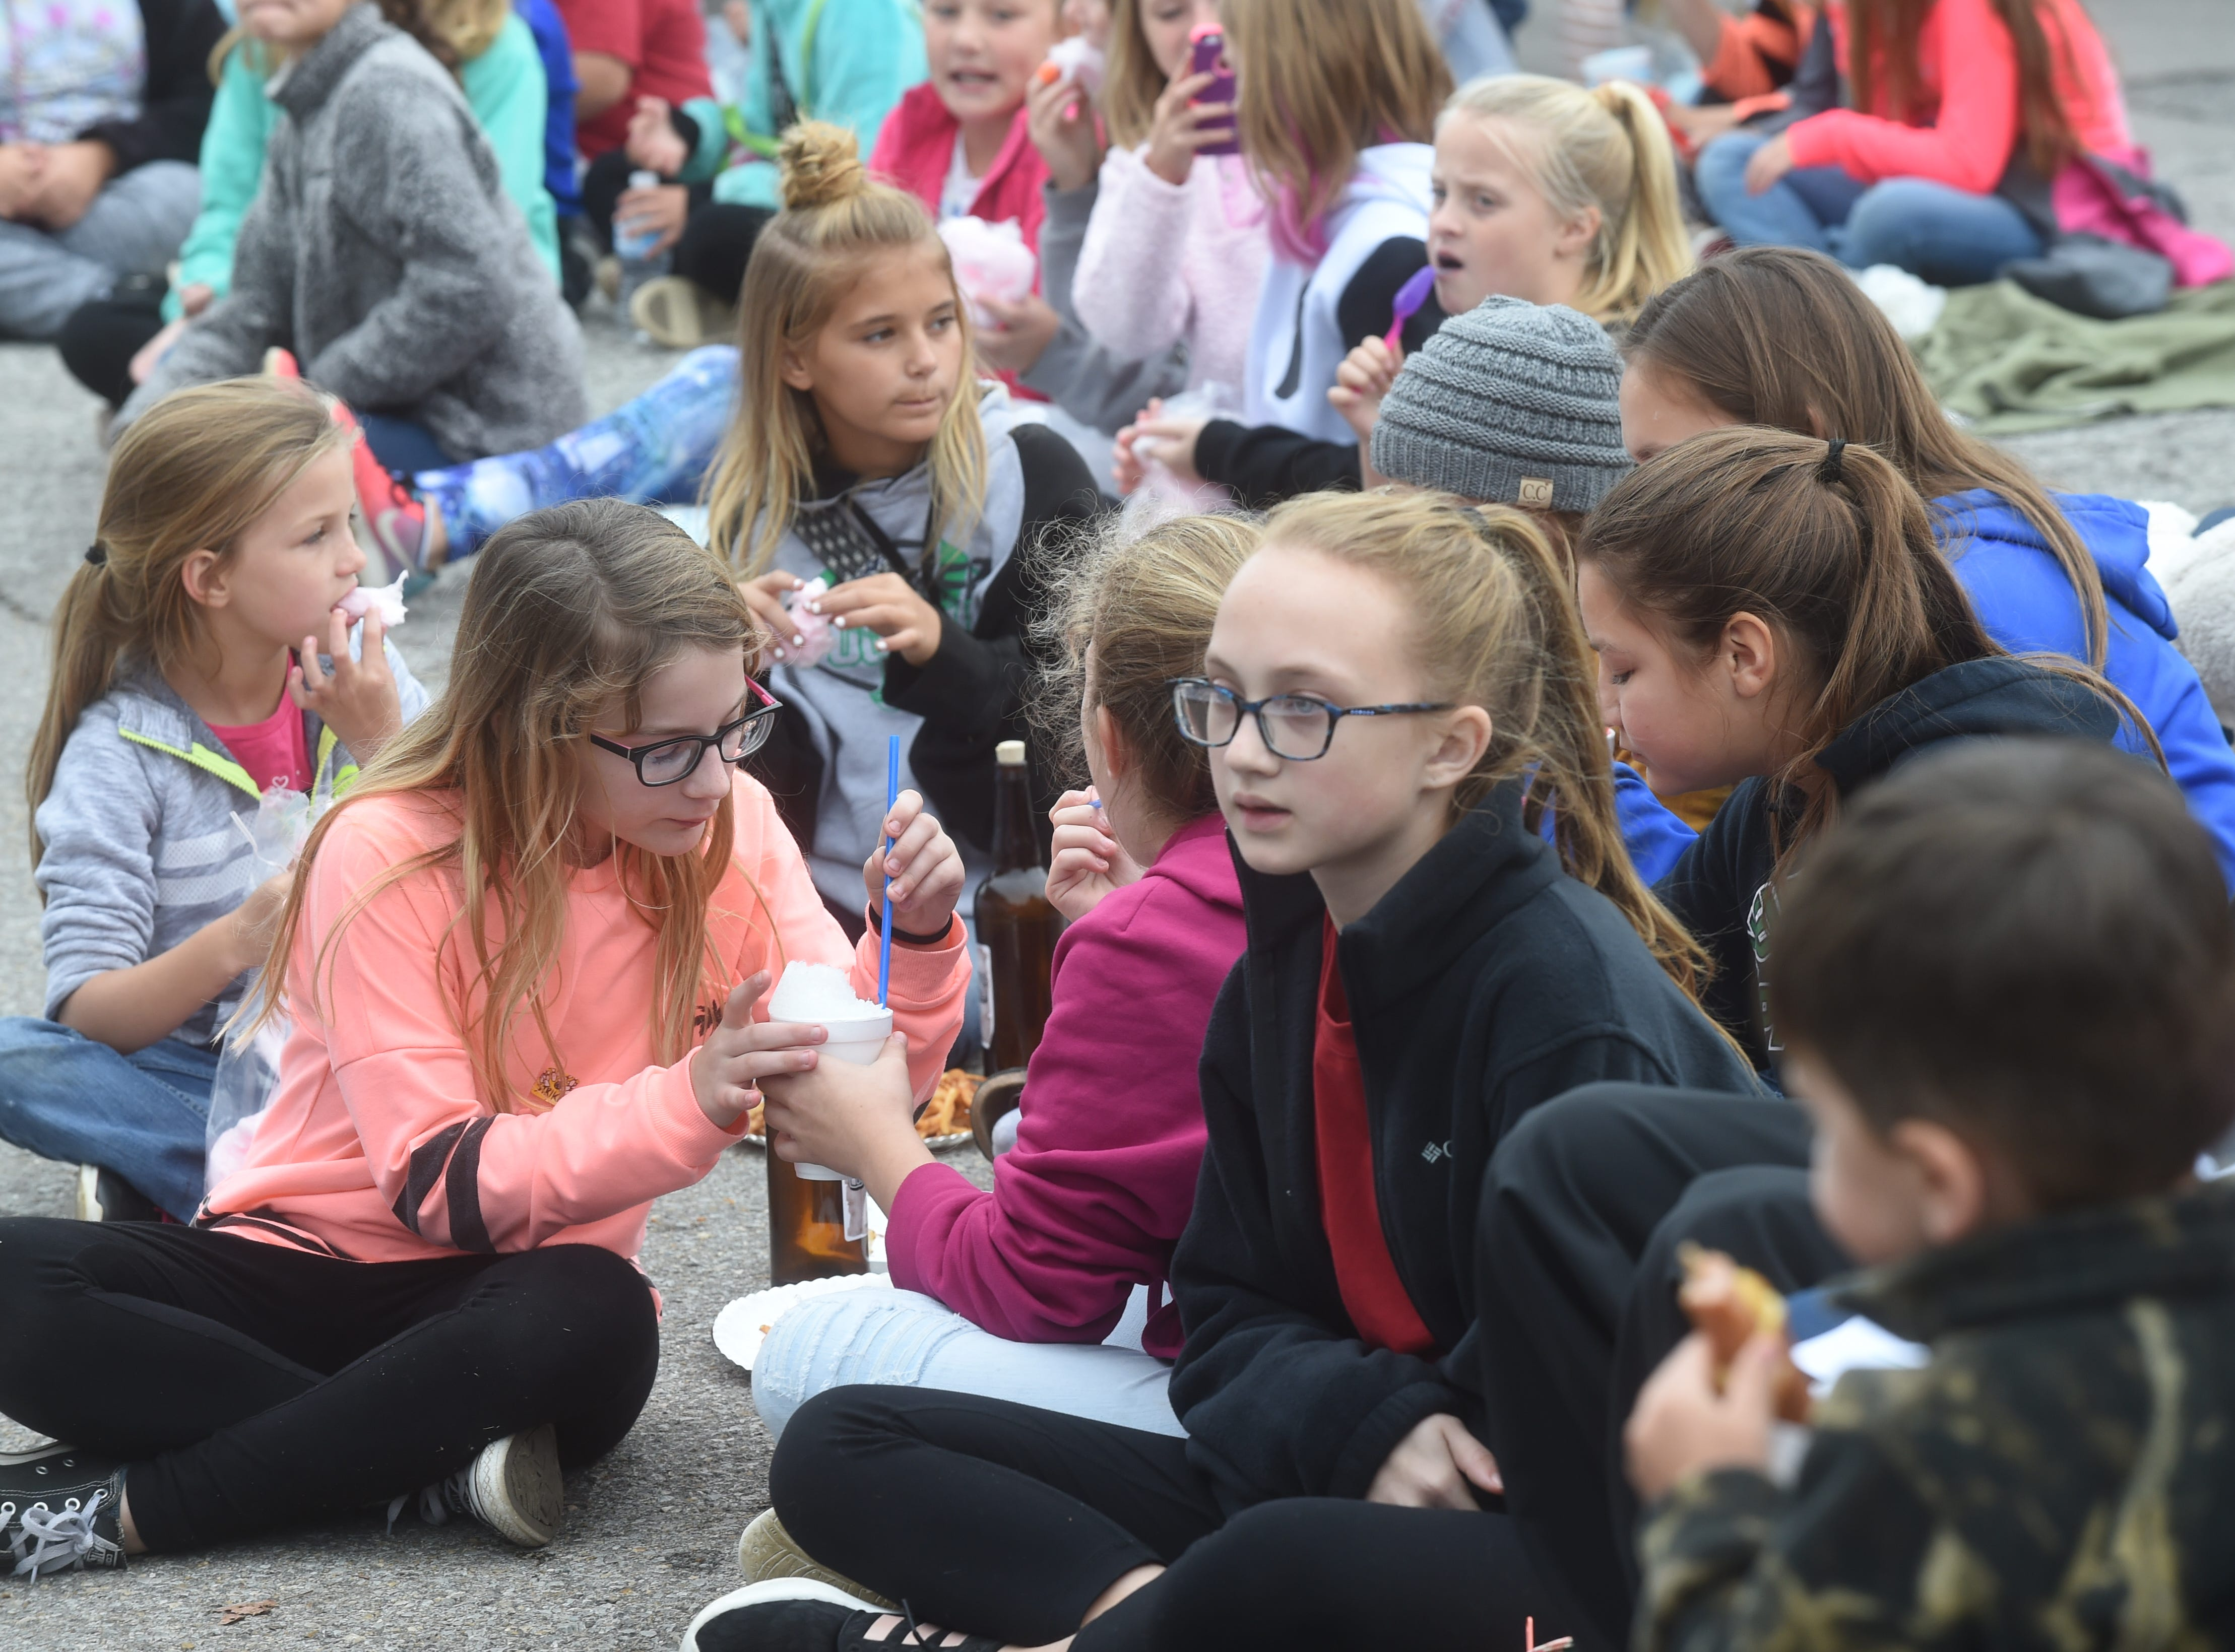 A scene from Friday at the 2018 Turkey Trot Festival.